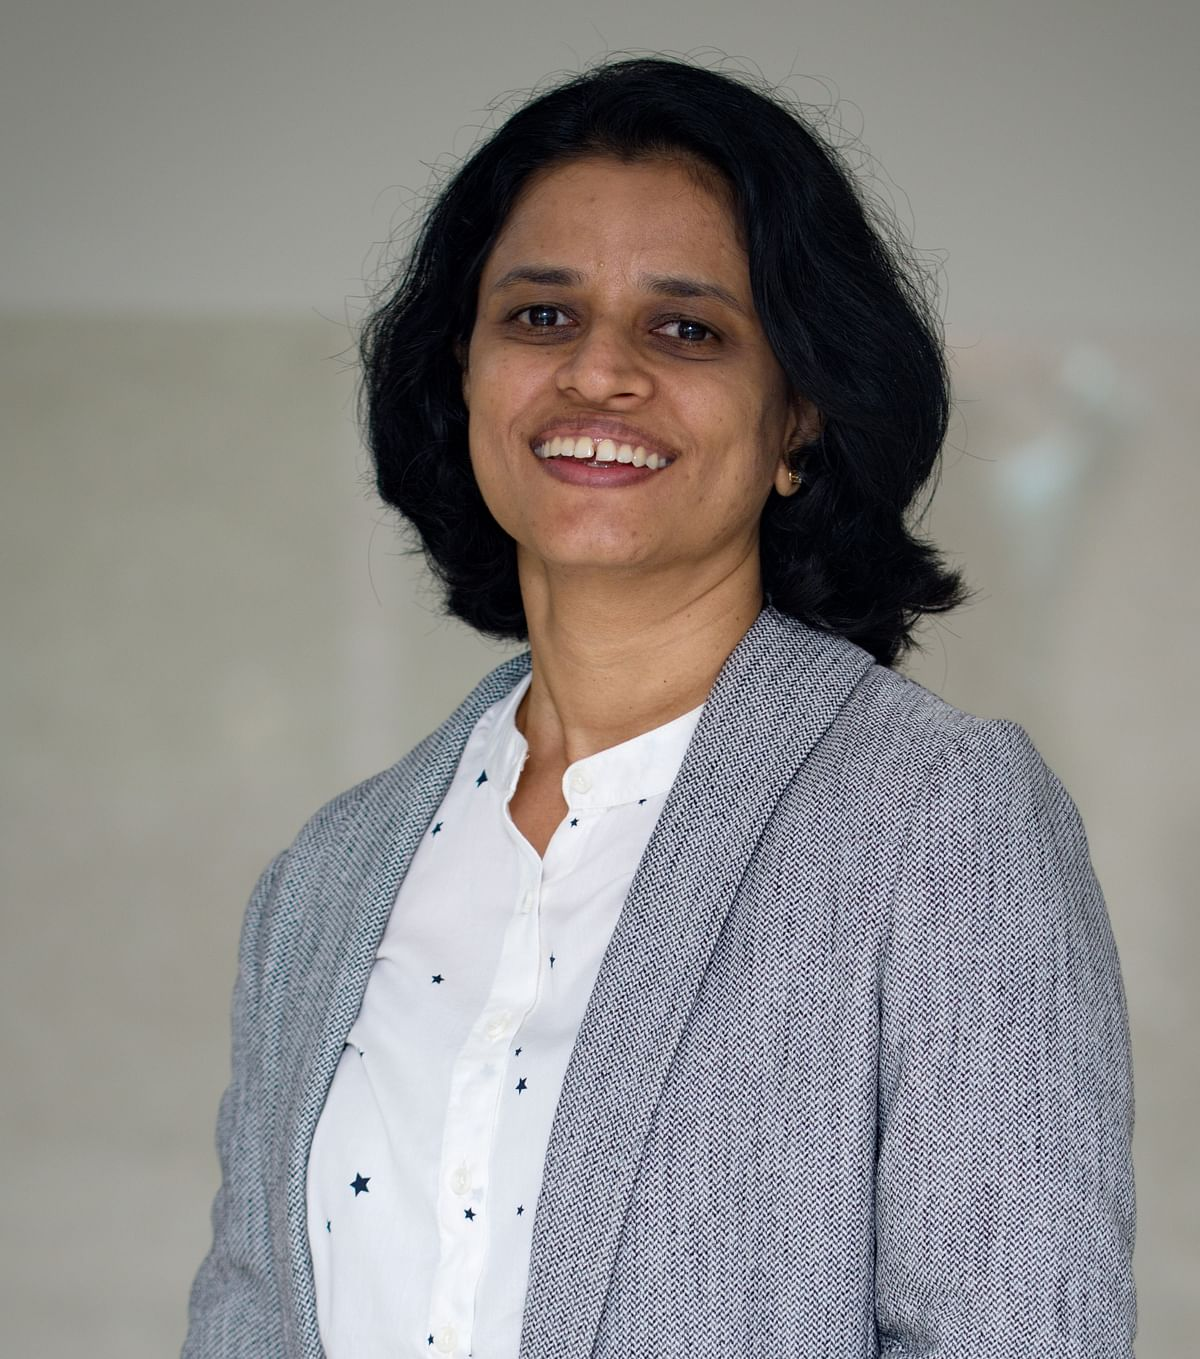 Liver and renal transplant surgeon Dr. Gomathy Narasimhan